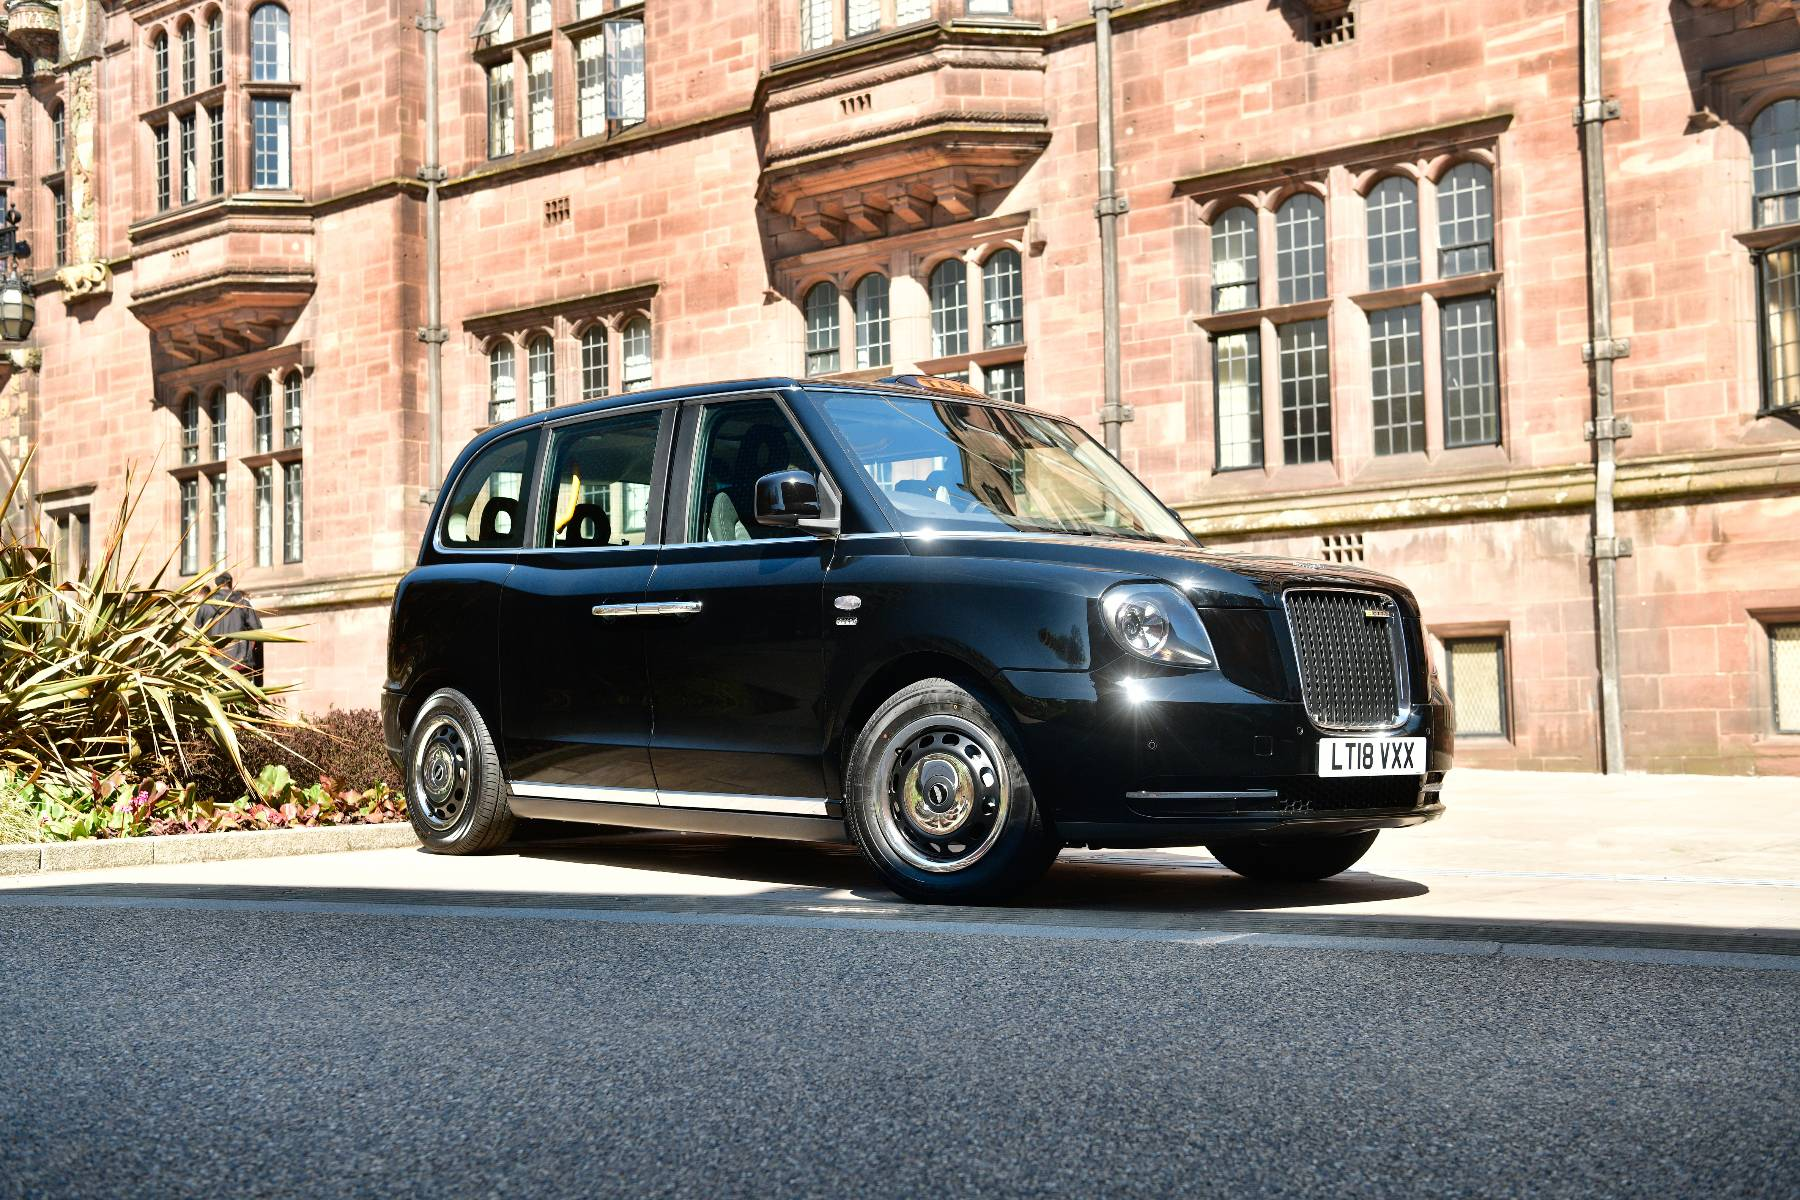 Go Electric Taxi